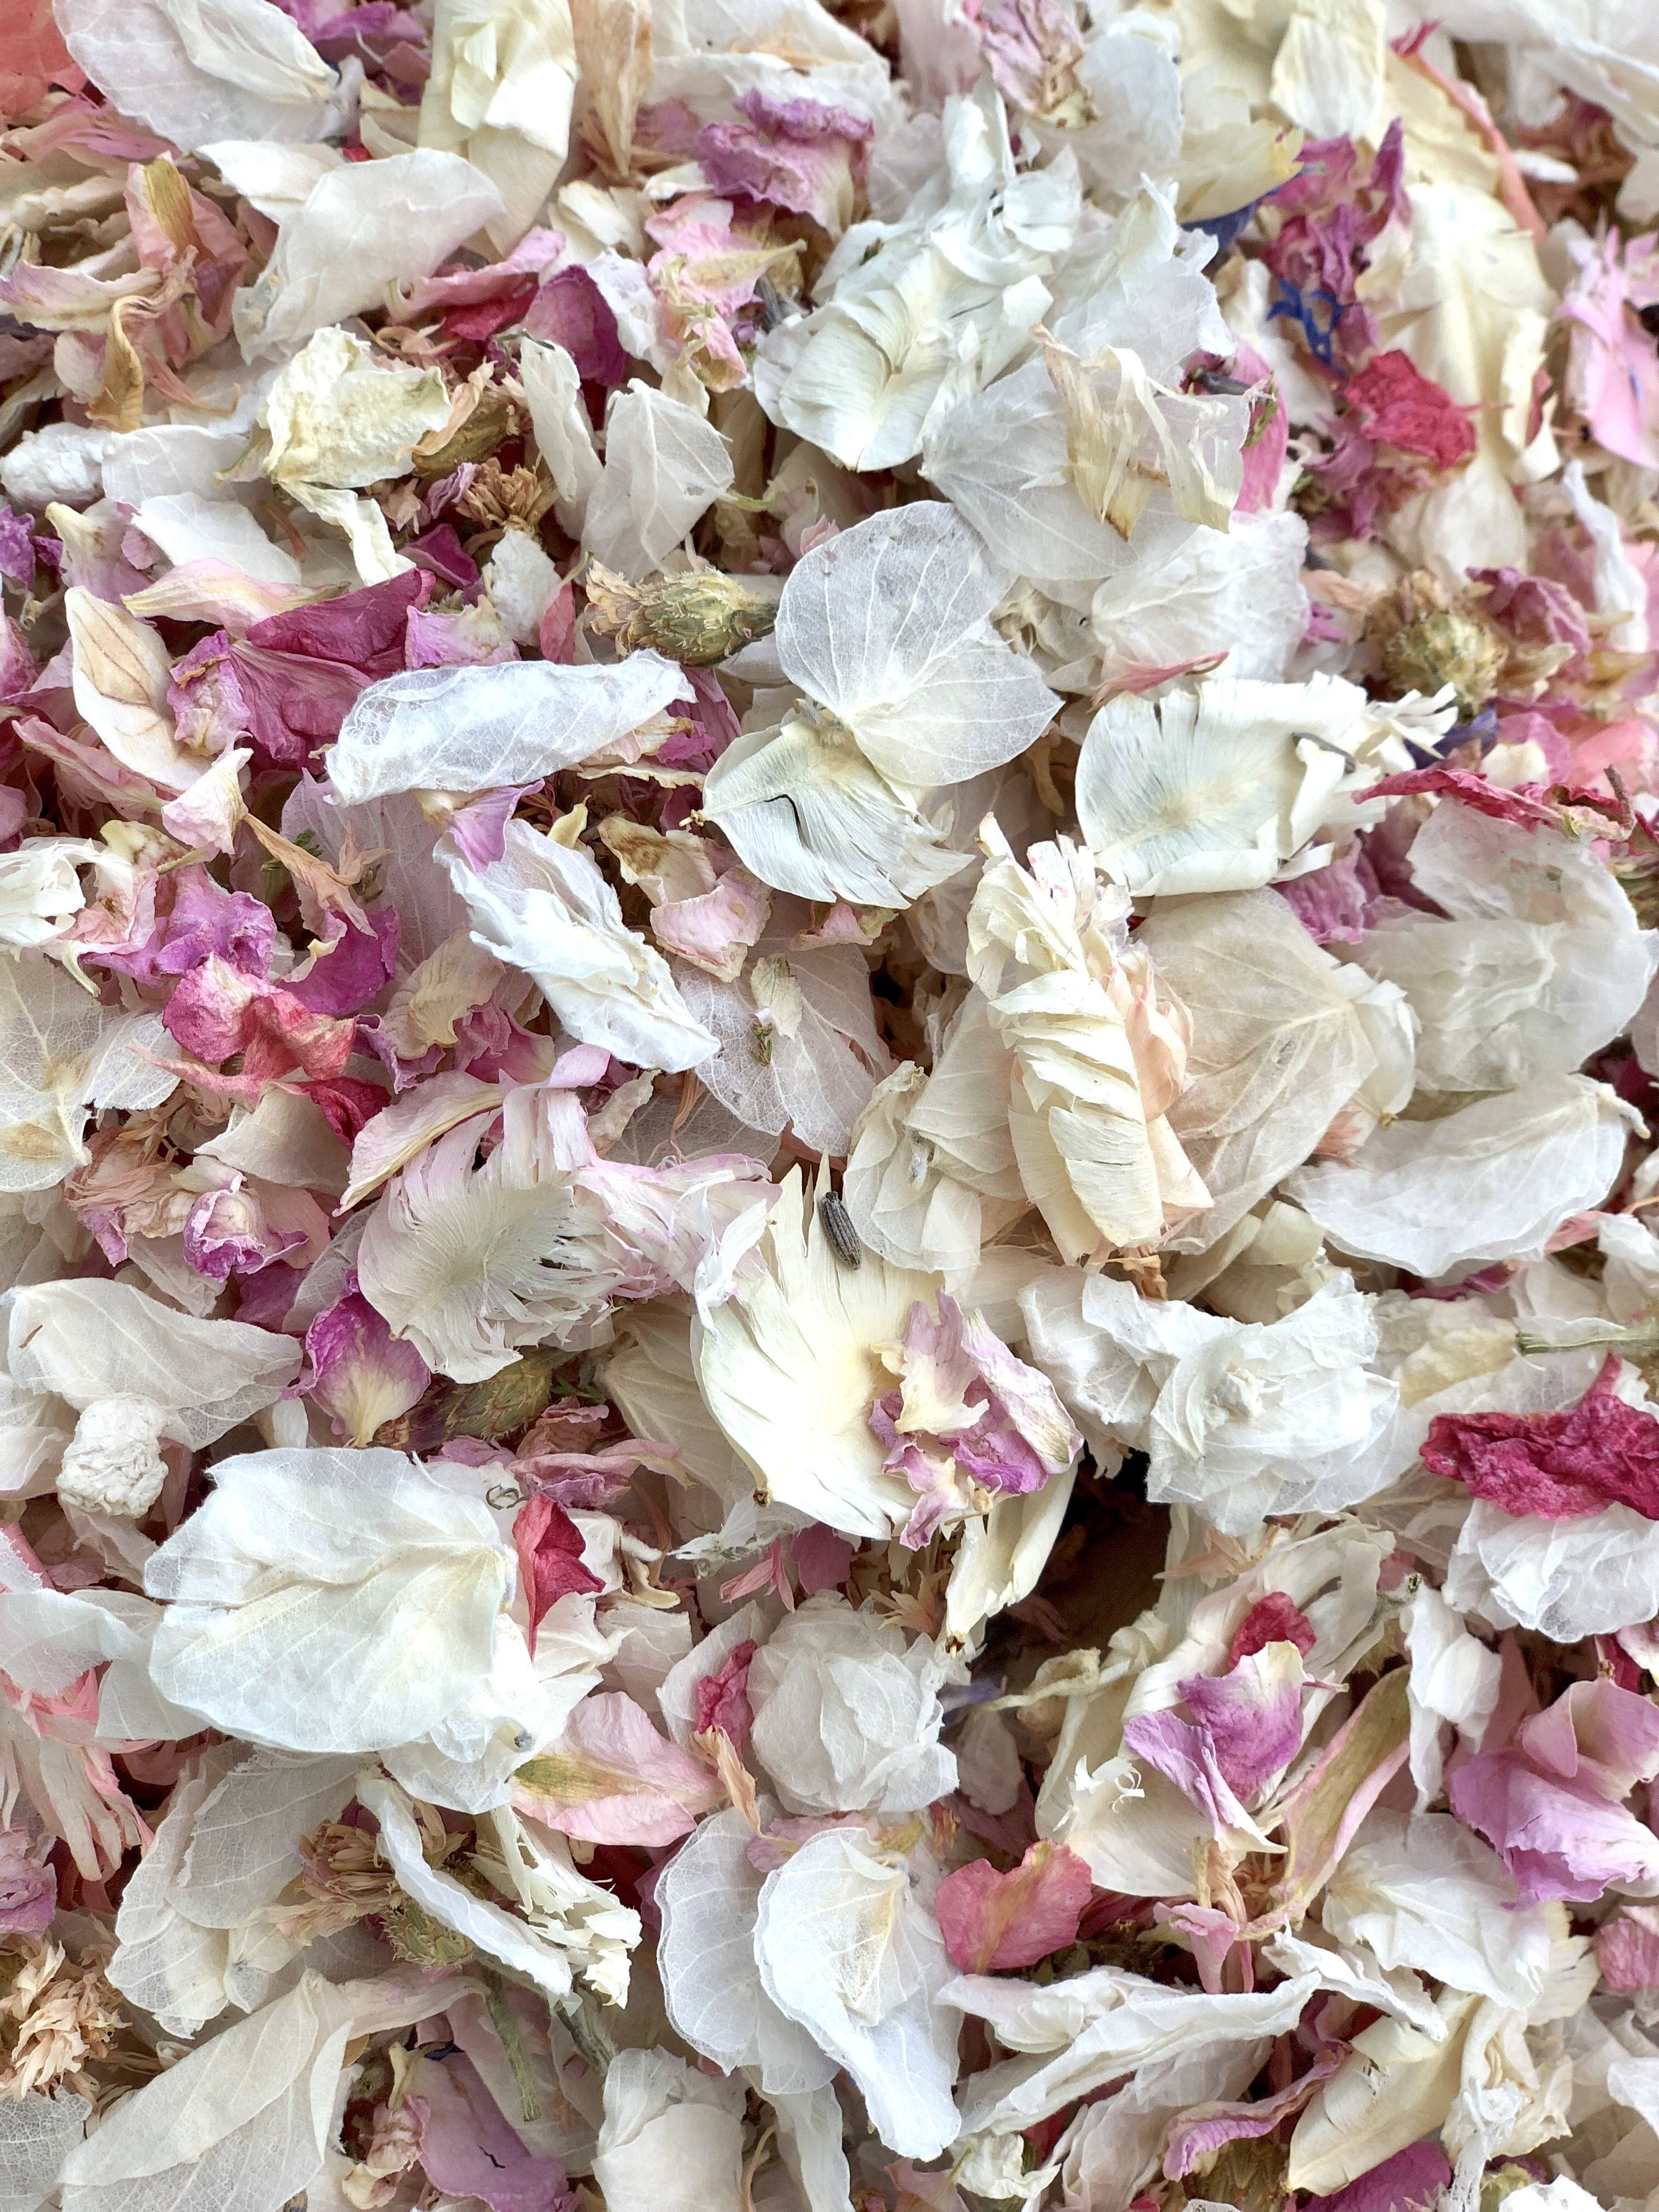 Ivory, Pink and Lilac Confetti Petals  Biodegradable and